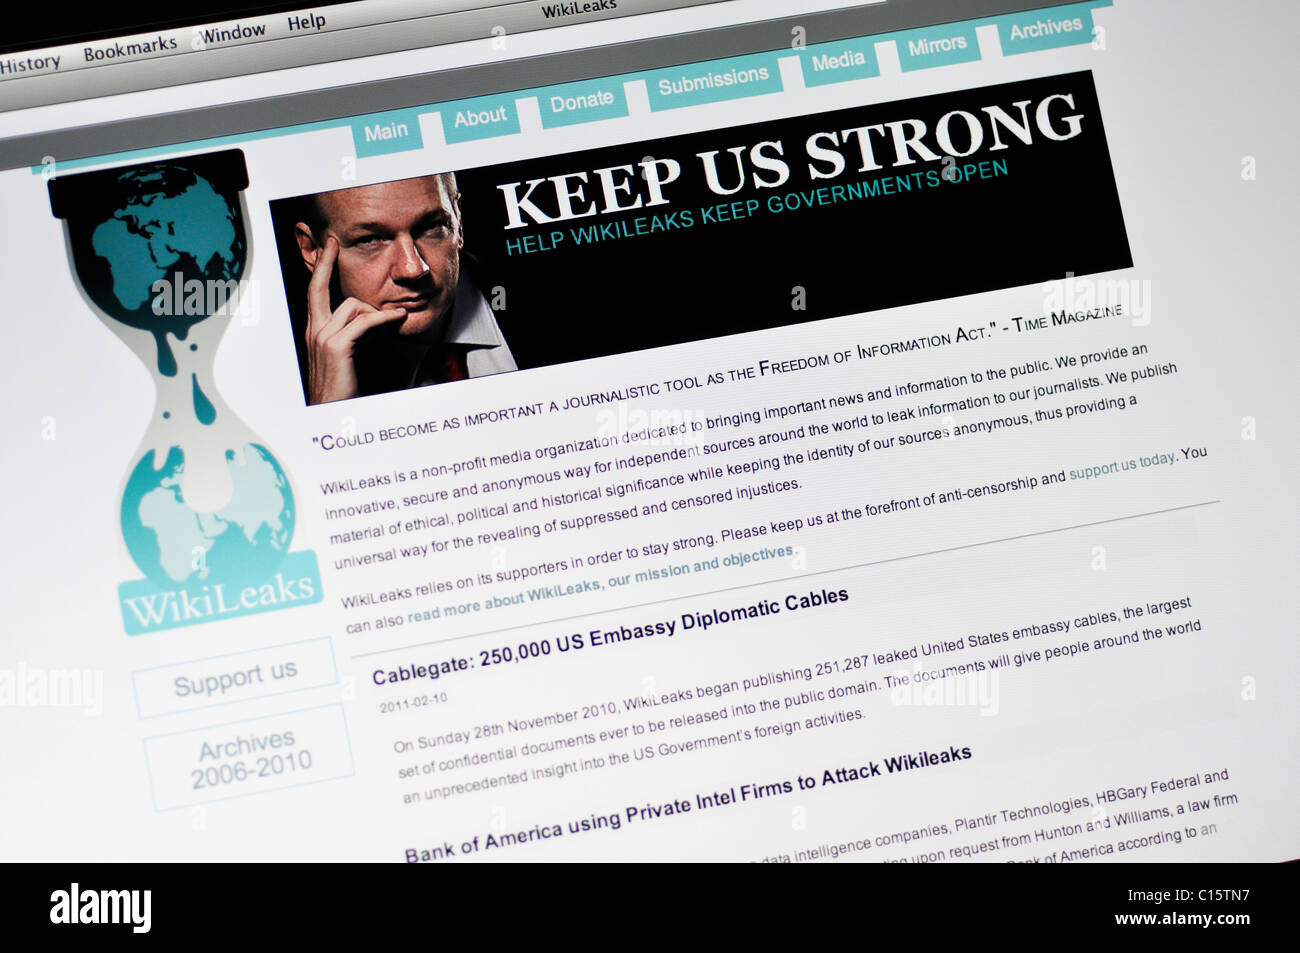 wikileaks stock photos wikileaks stock images alamy wikileaks website private secret and classified media from anonymous news sources news